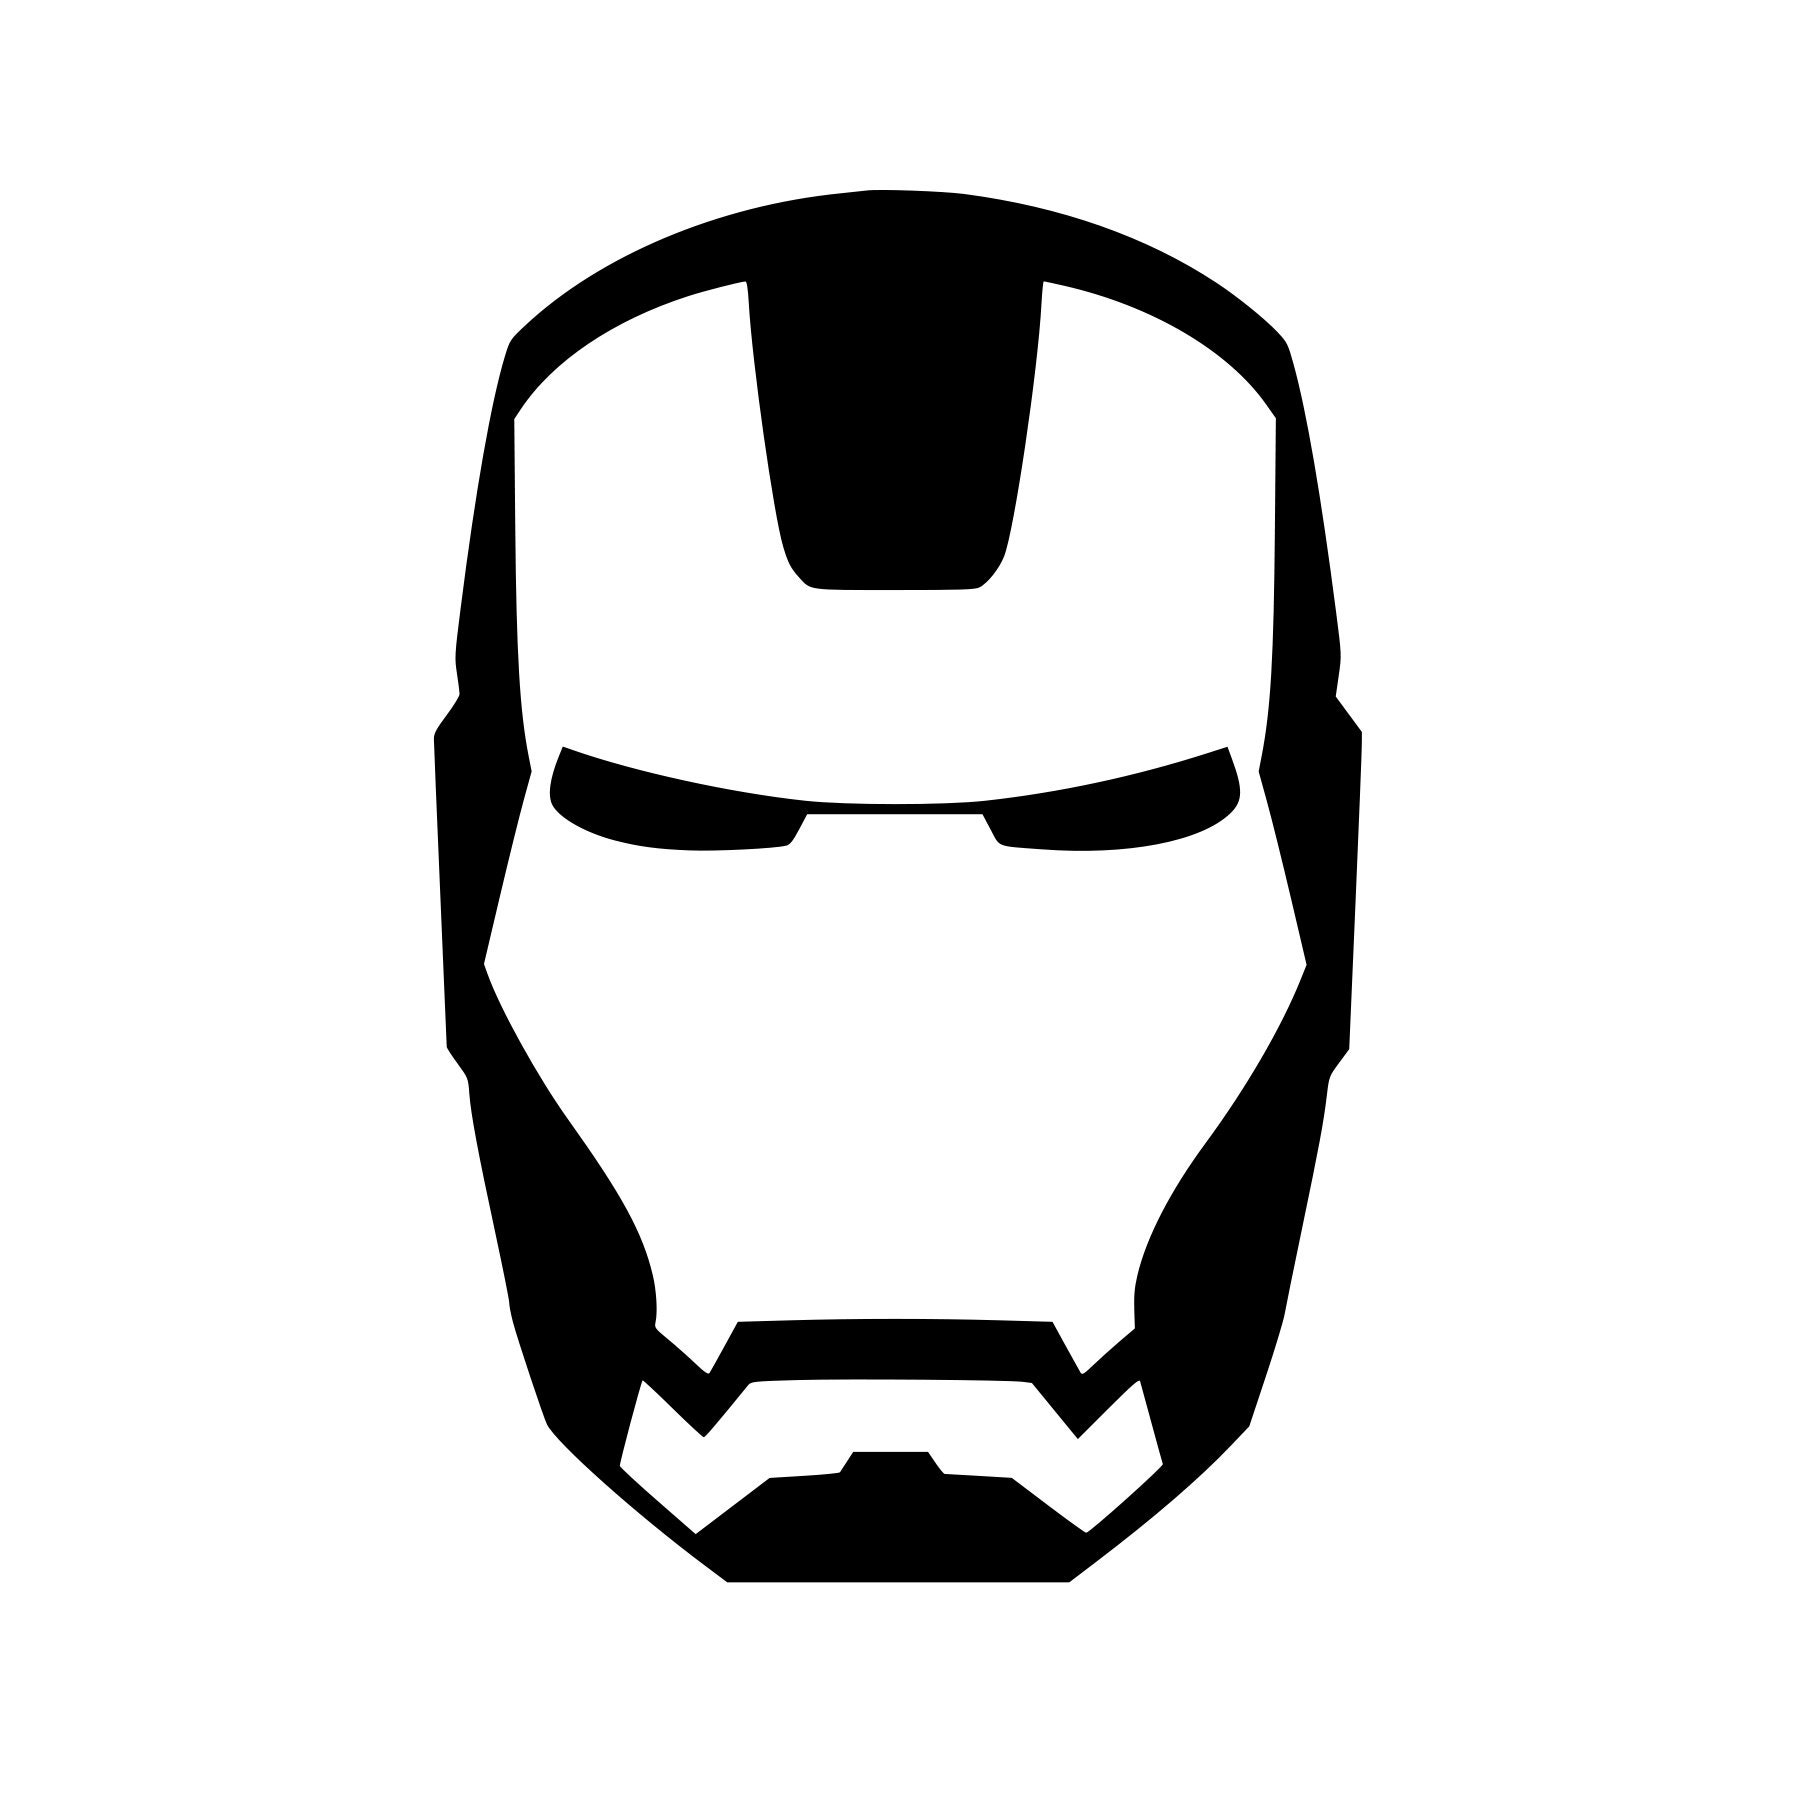 Ironman Face Mask Logo Vinyl Decal Any Color Size Etsy Luggage Tag Head 2 Movie Avengers Window Wall Sticker Laptop